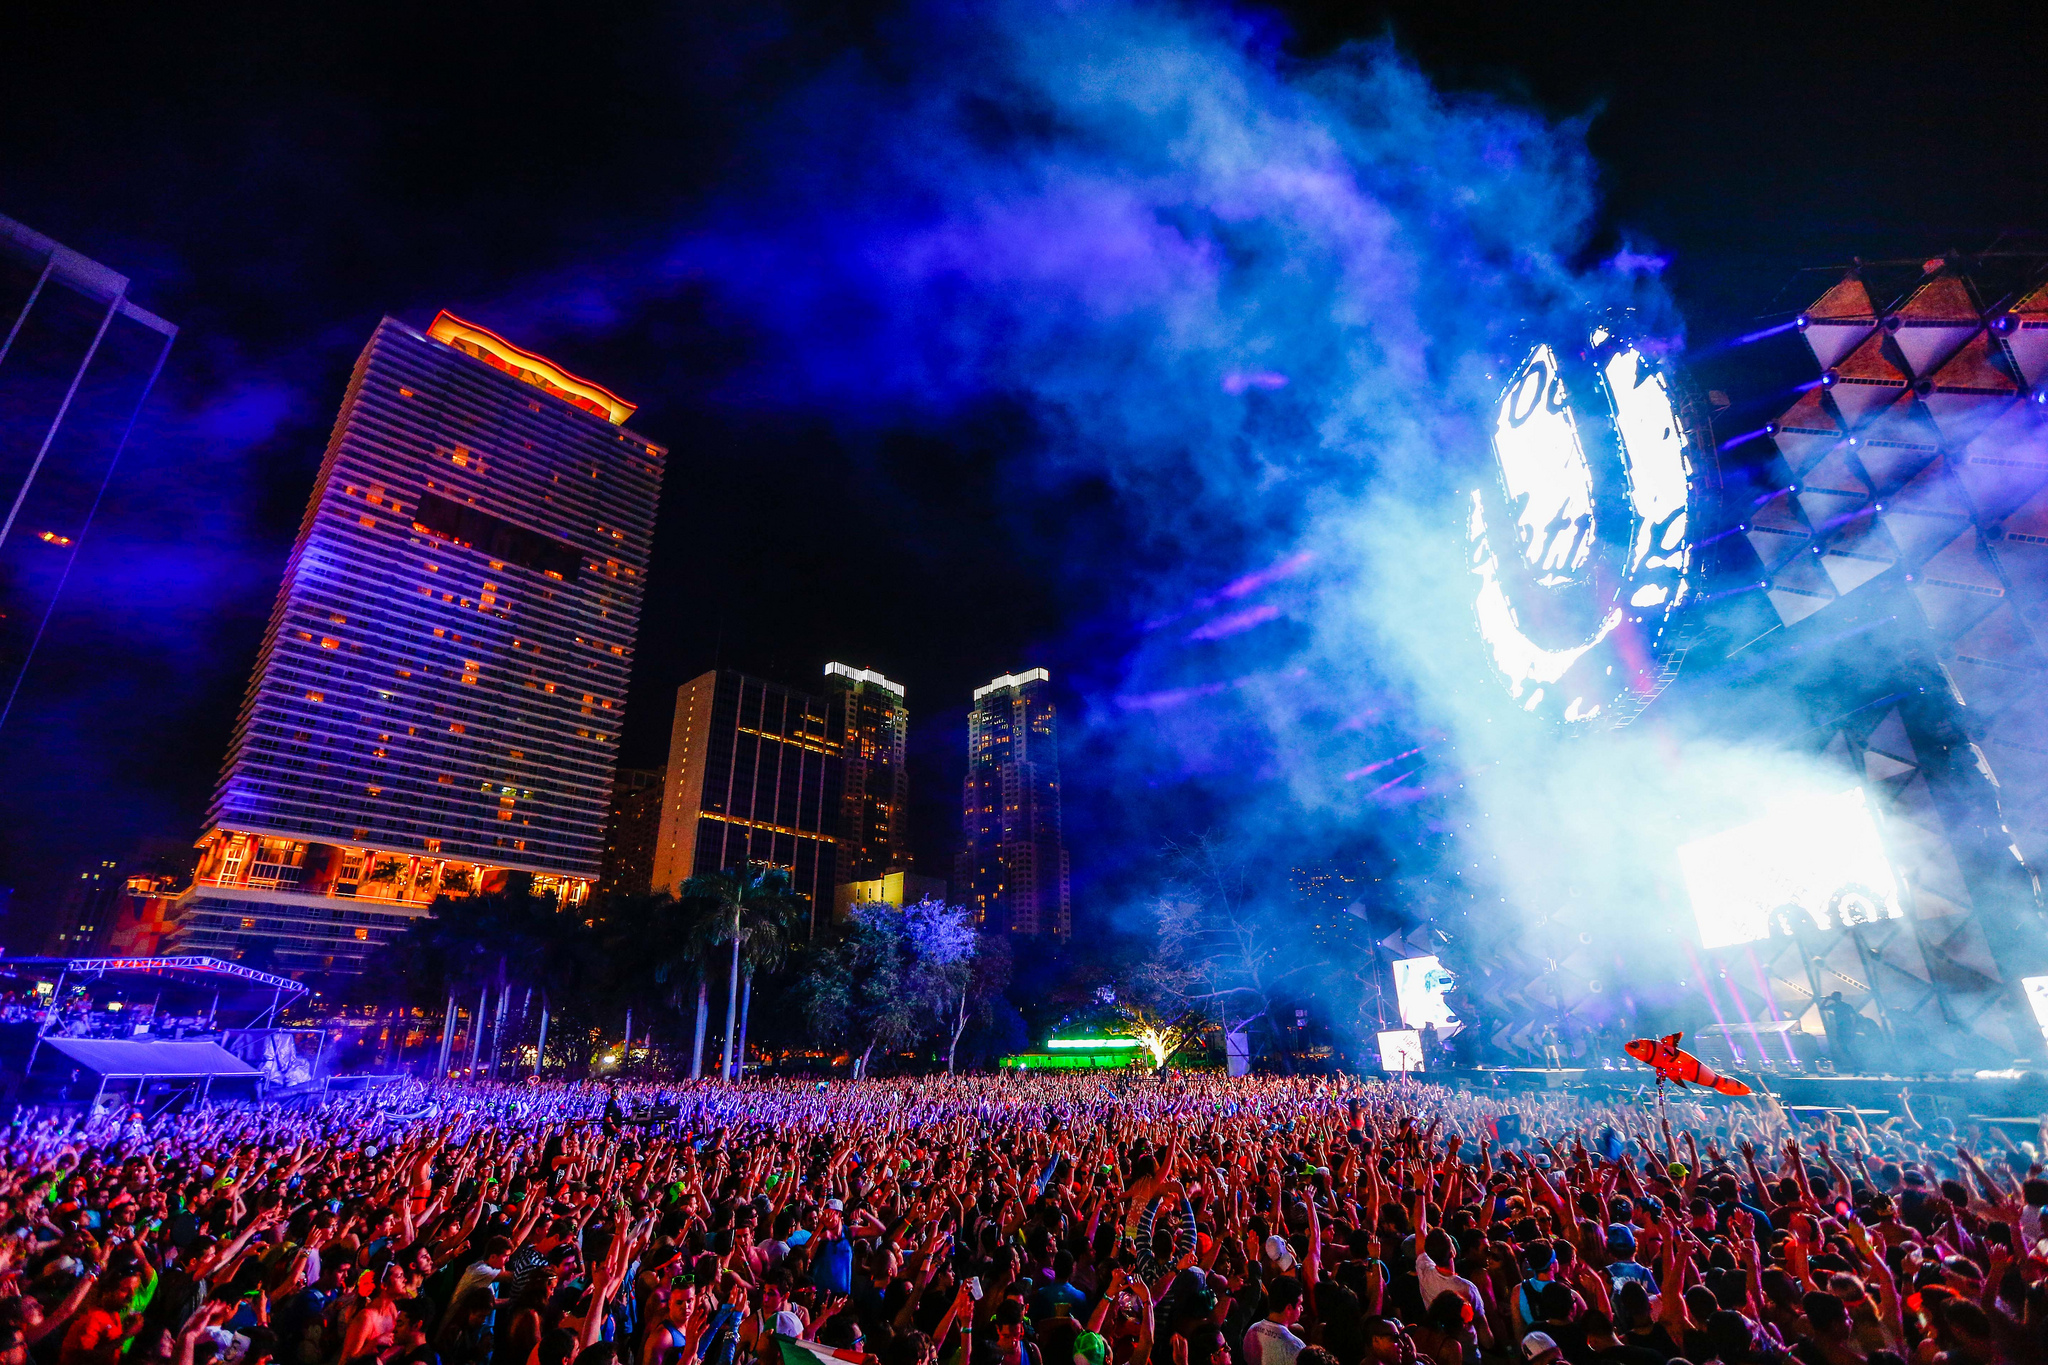 Download Ultra Music Festival HD Wallpaper Gallery